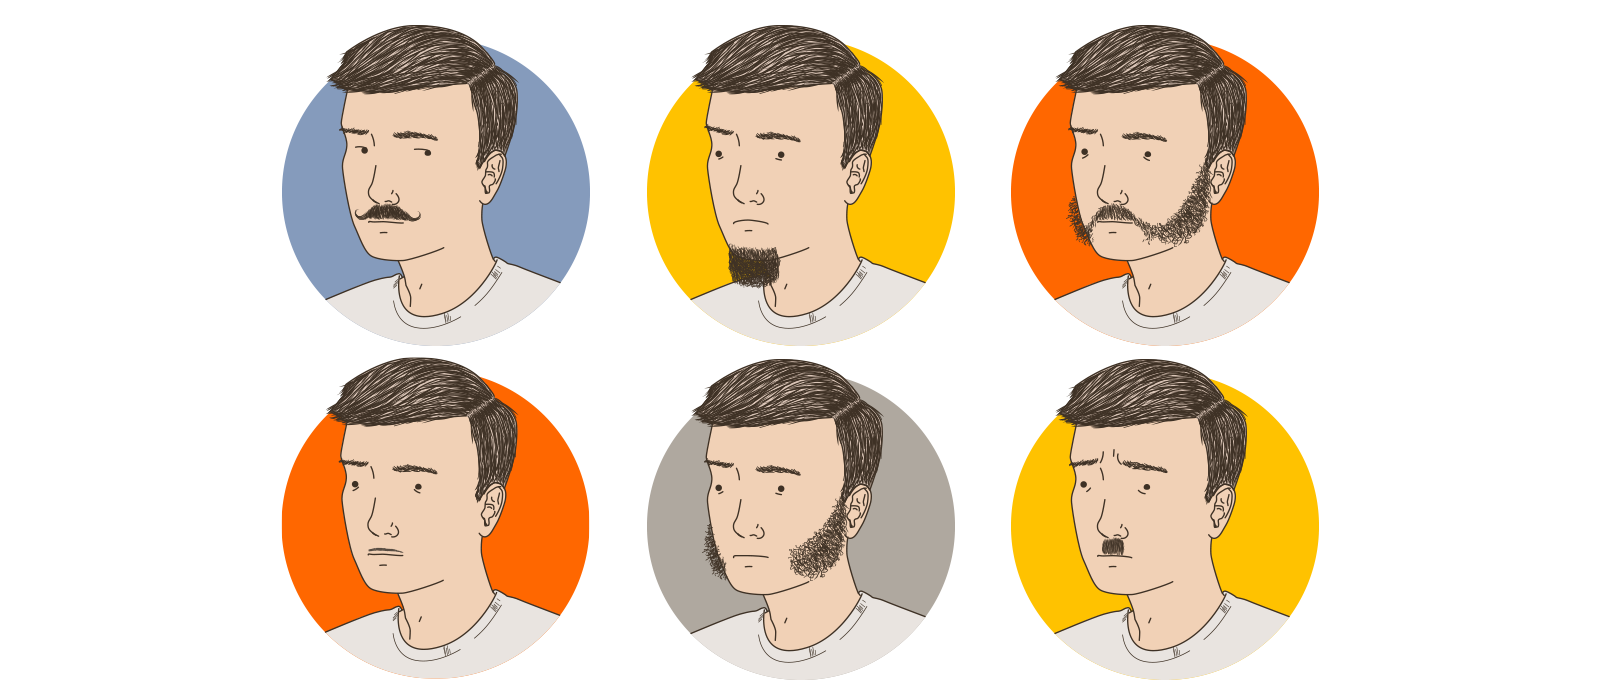 Mens Facial Hair Options Ranked From Worst To Best